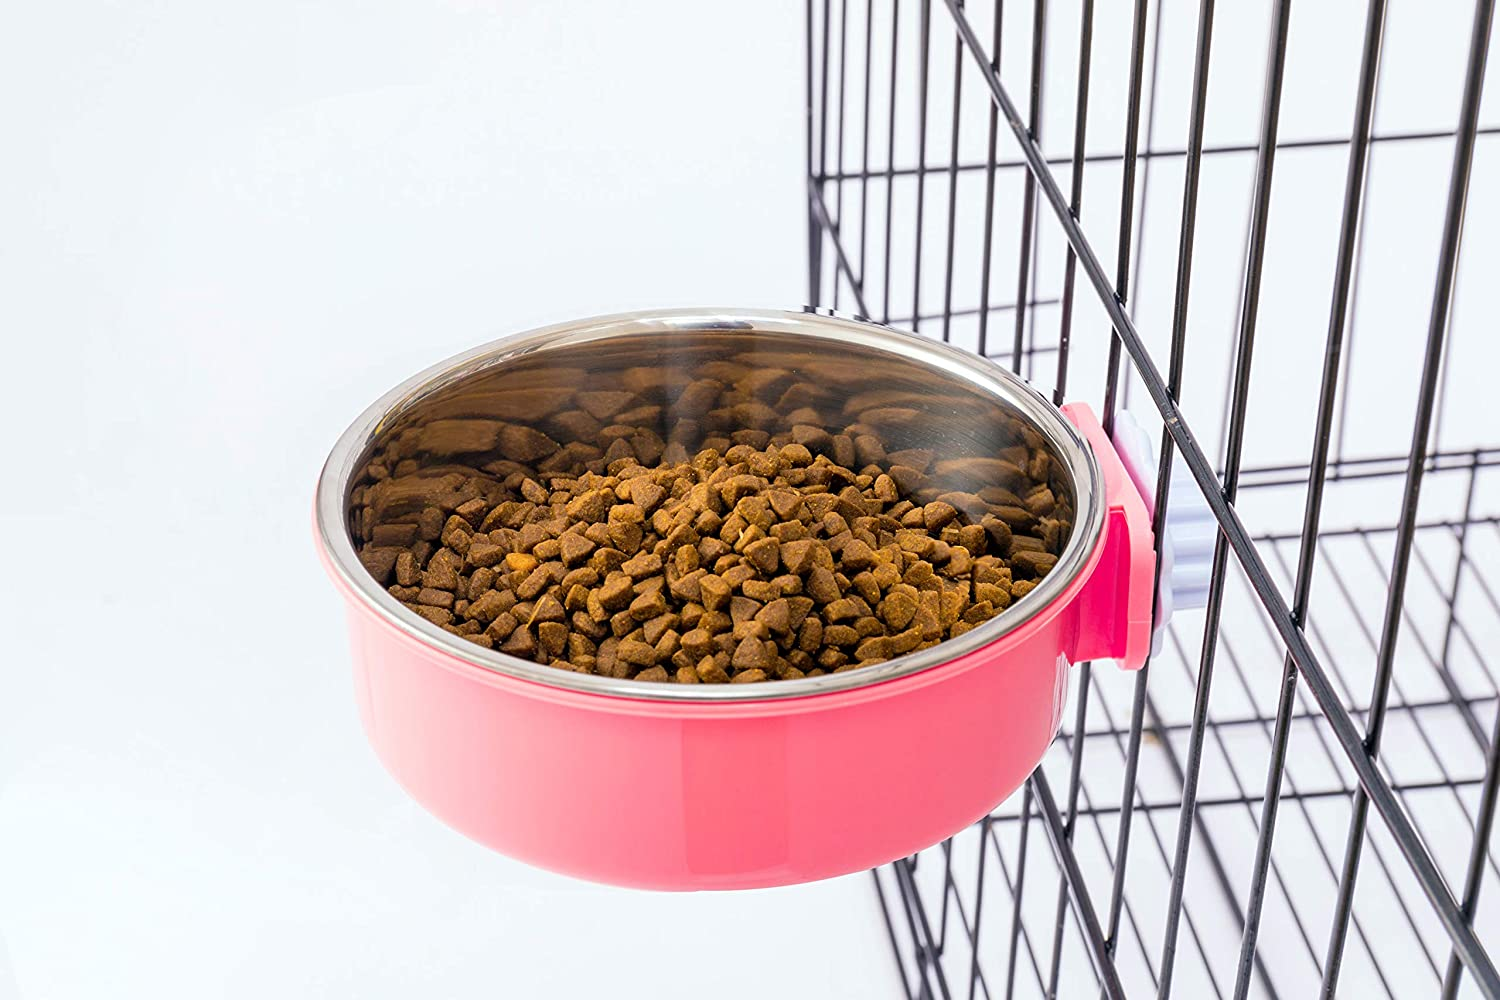 Flymoqi Crate Dog Bowl,Stainless Steel Removable Water Food Feeder Bows Cage Coop Cup for Dogs,Cats,Birds,Small Animals,20 oz (Pink)